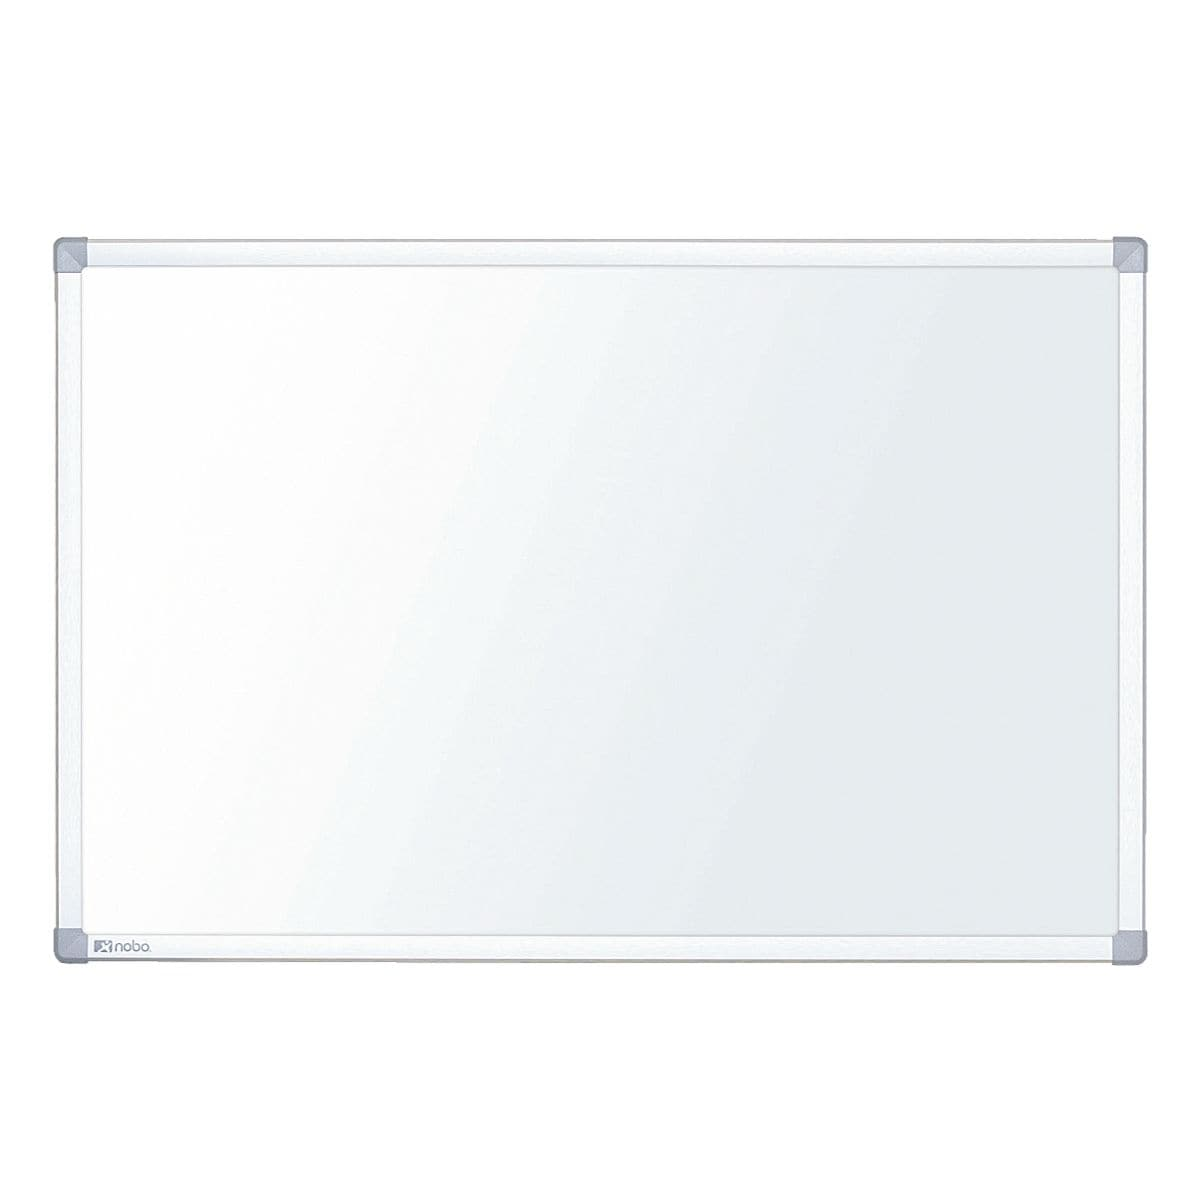 Whiteboard Günstig Nobo Whiteboard Nano Clean 120 X 90 Cm Bei Otto Office